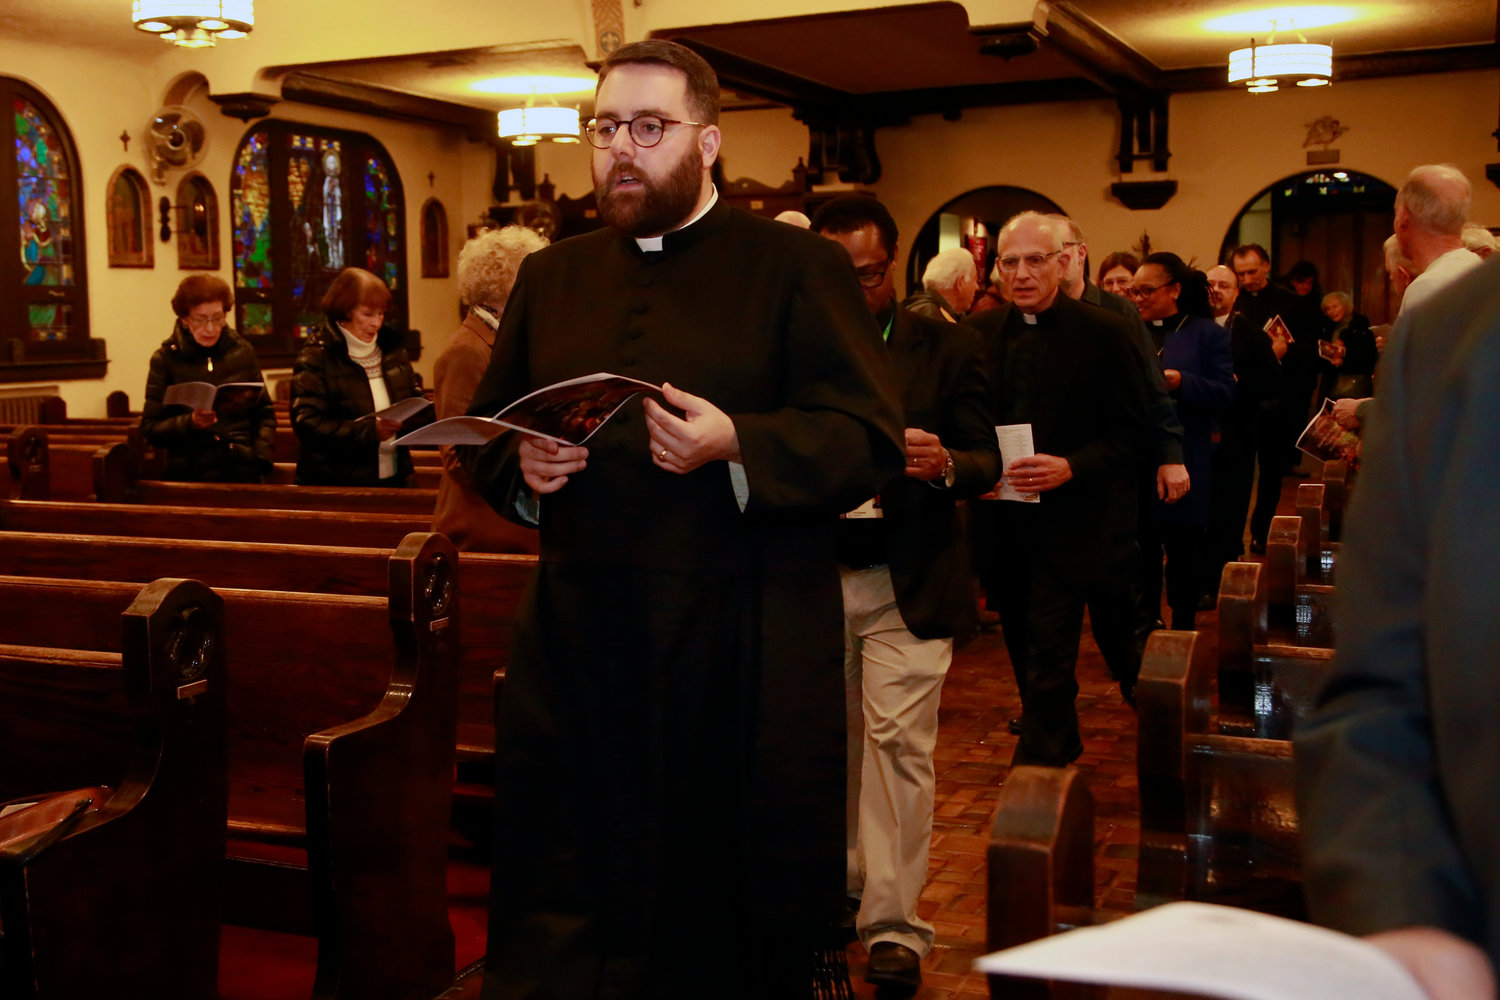 The Rev. Michael Duffy, of Our Lady of Lourdes, led the procession of clergy during the annual Thanksgiving Interfaith Worship Service last Sunday.